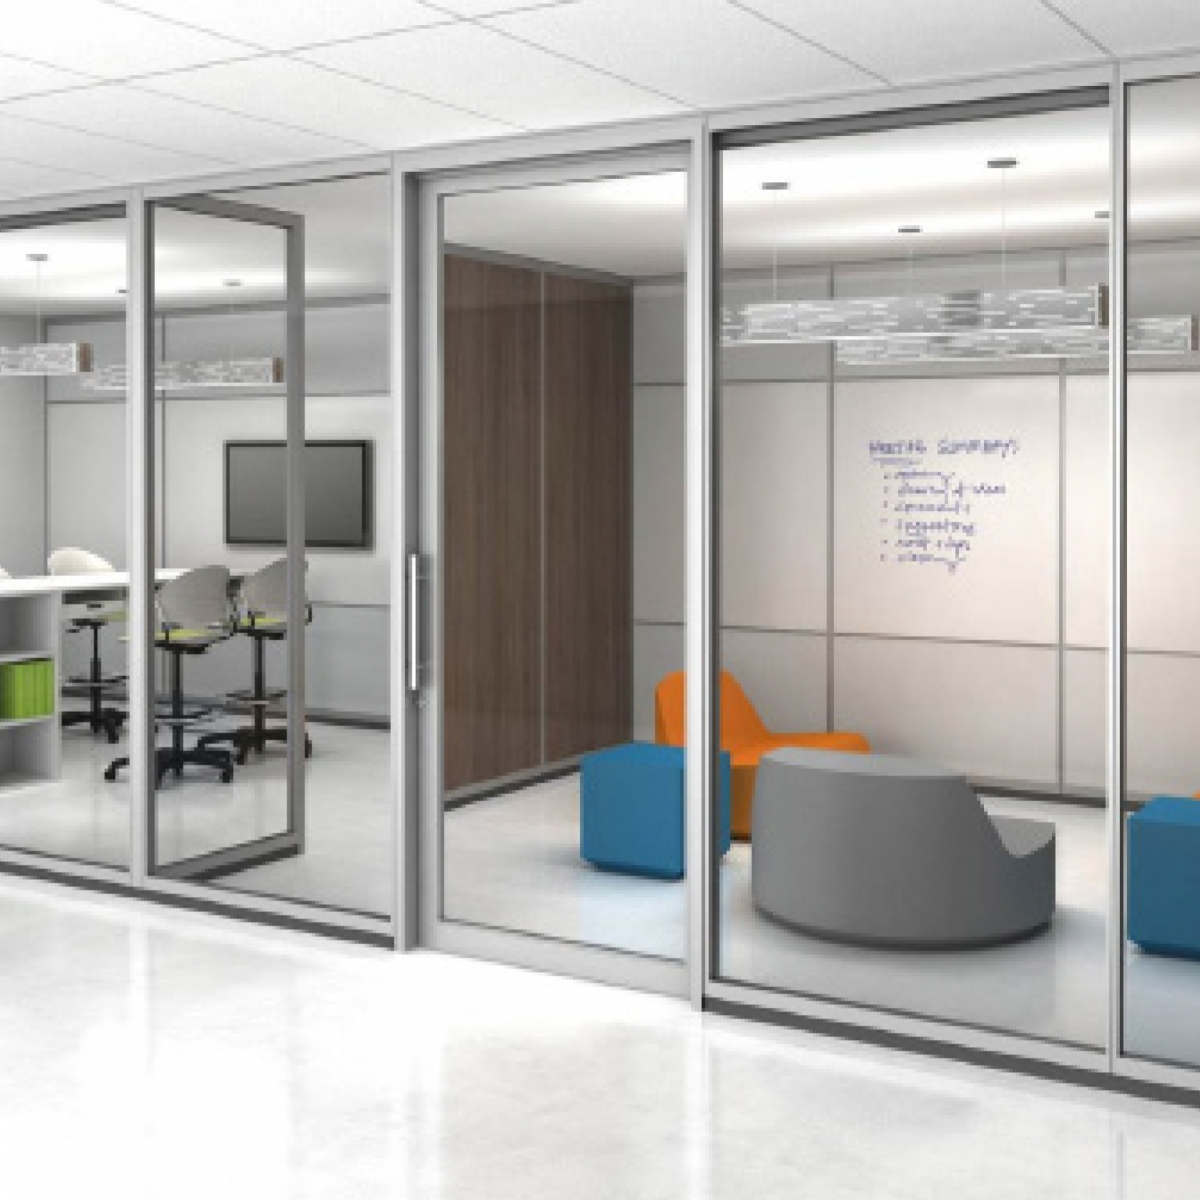 Student Project Spaces